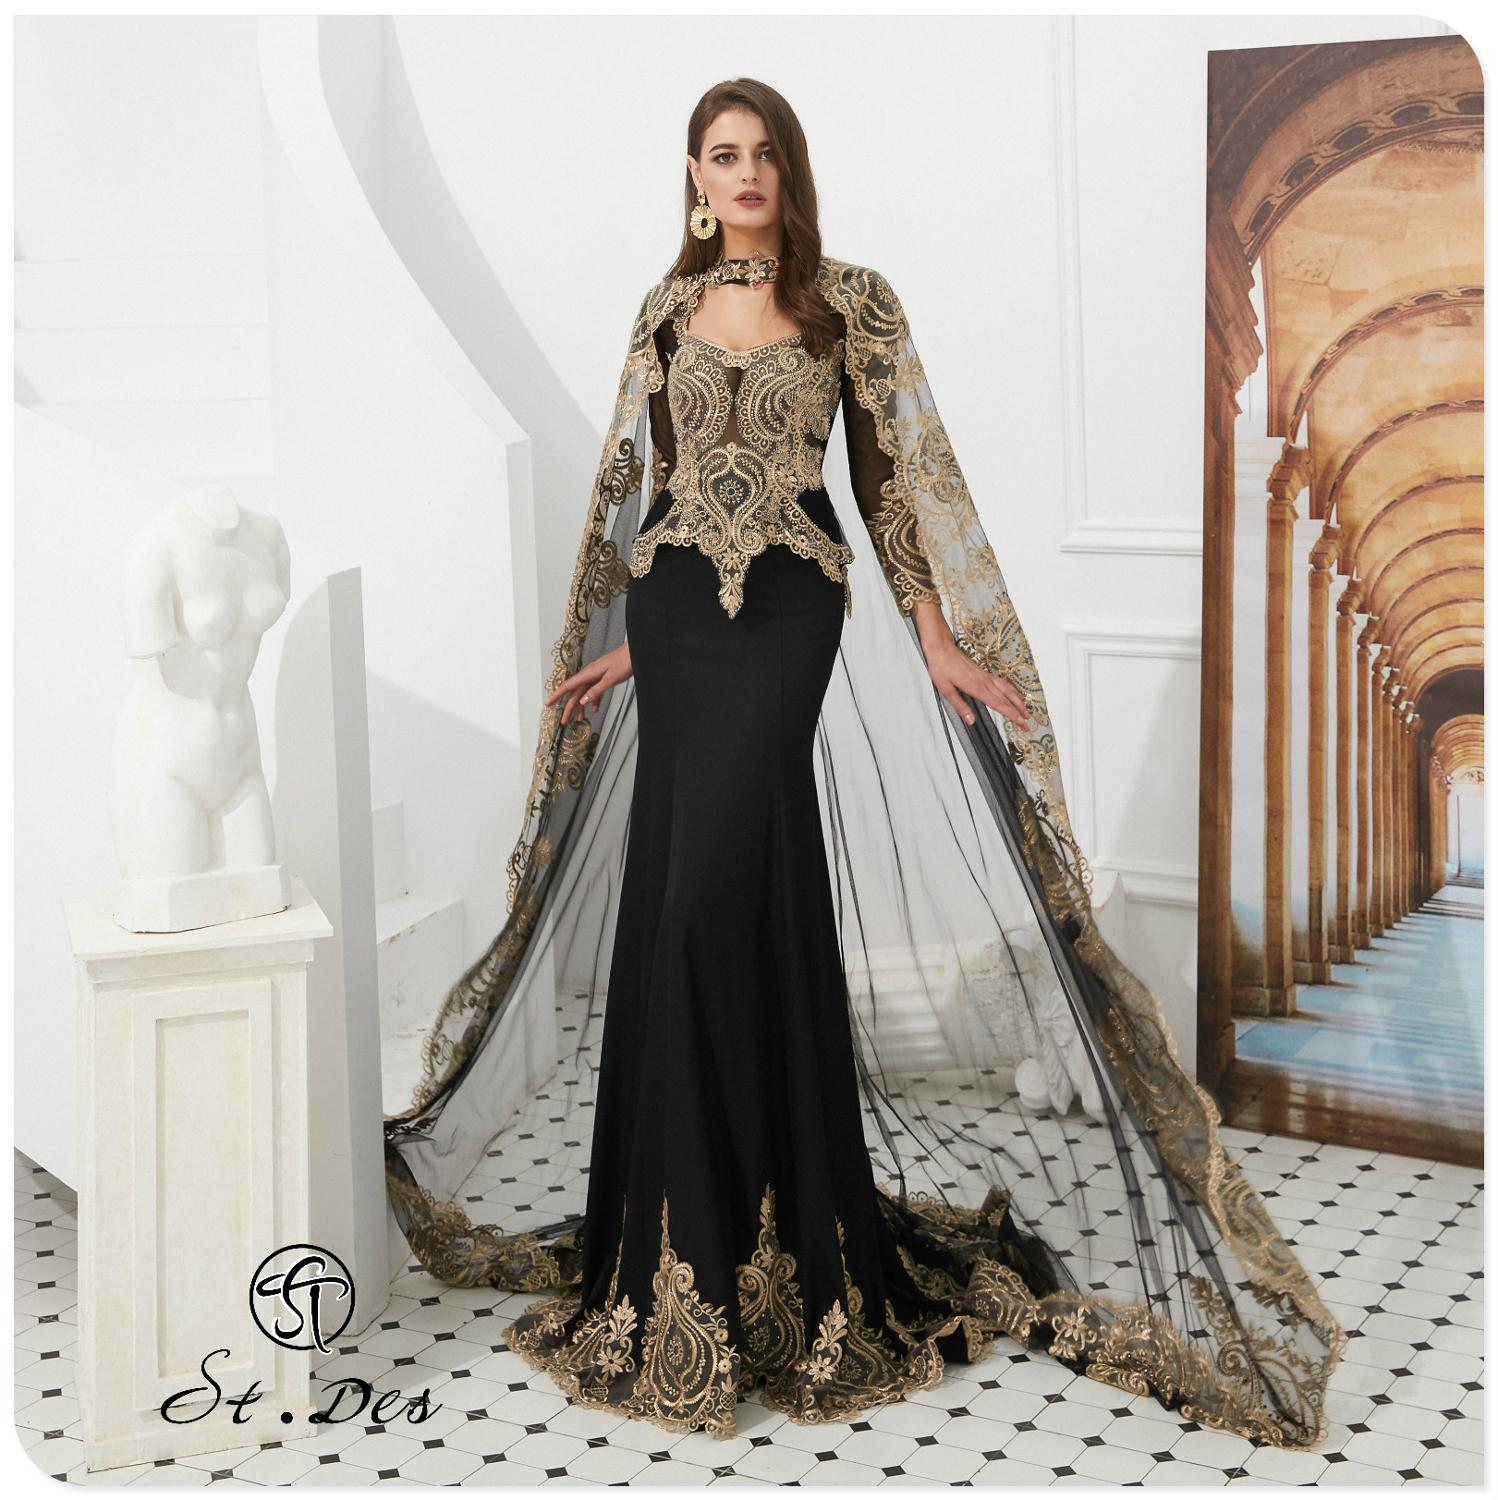 2020S.T.DES Mermaid Cloak Round-Neck Black Blue Wine Embroidery Long Sleeve Evening Dress With Cape Long Party Gown Formal Dress